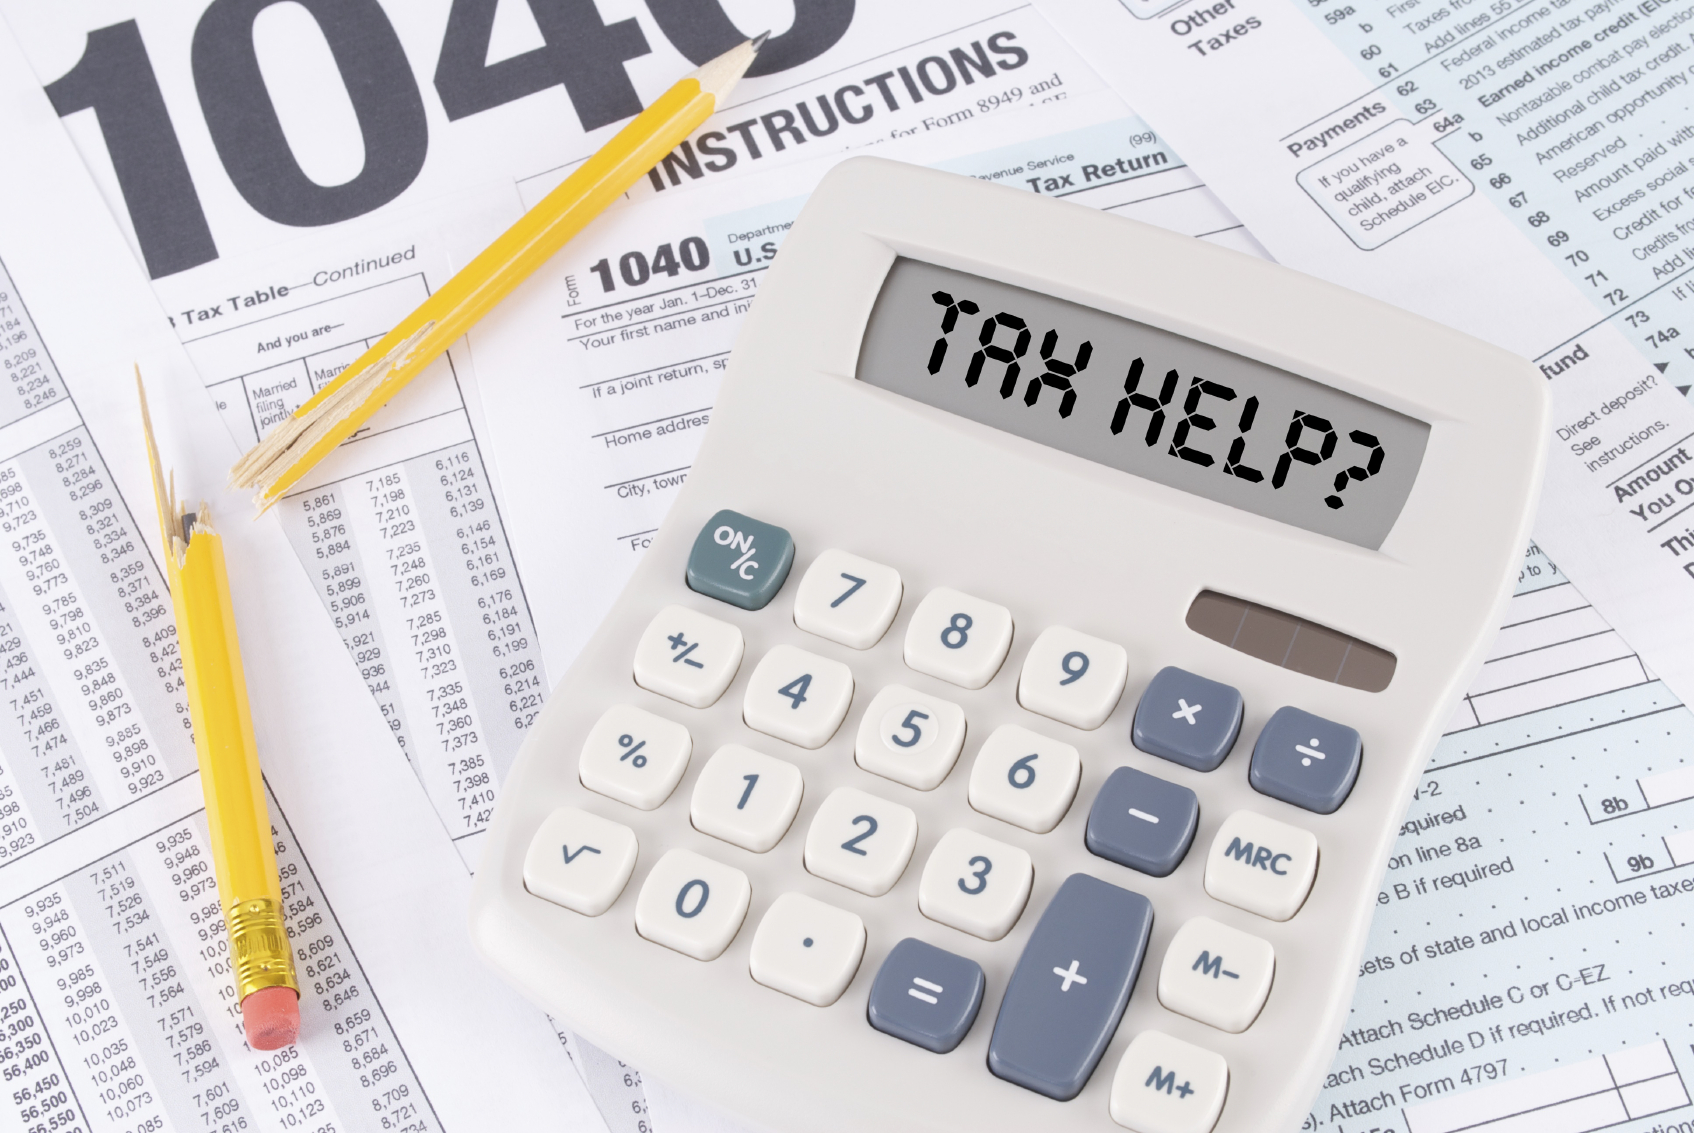 The Affordable Care Act Tax Filing Information